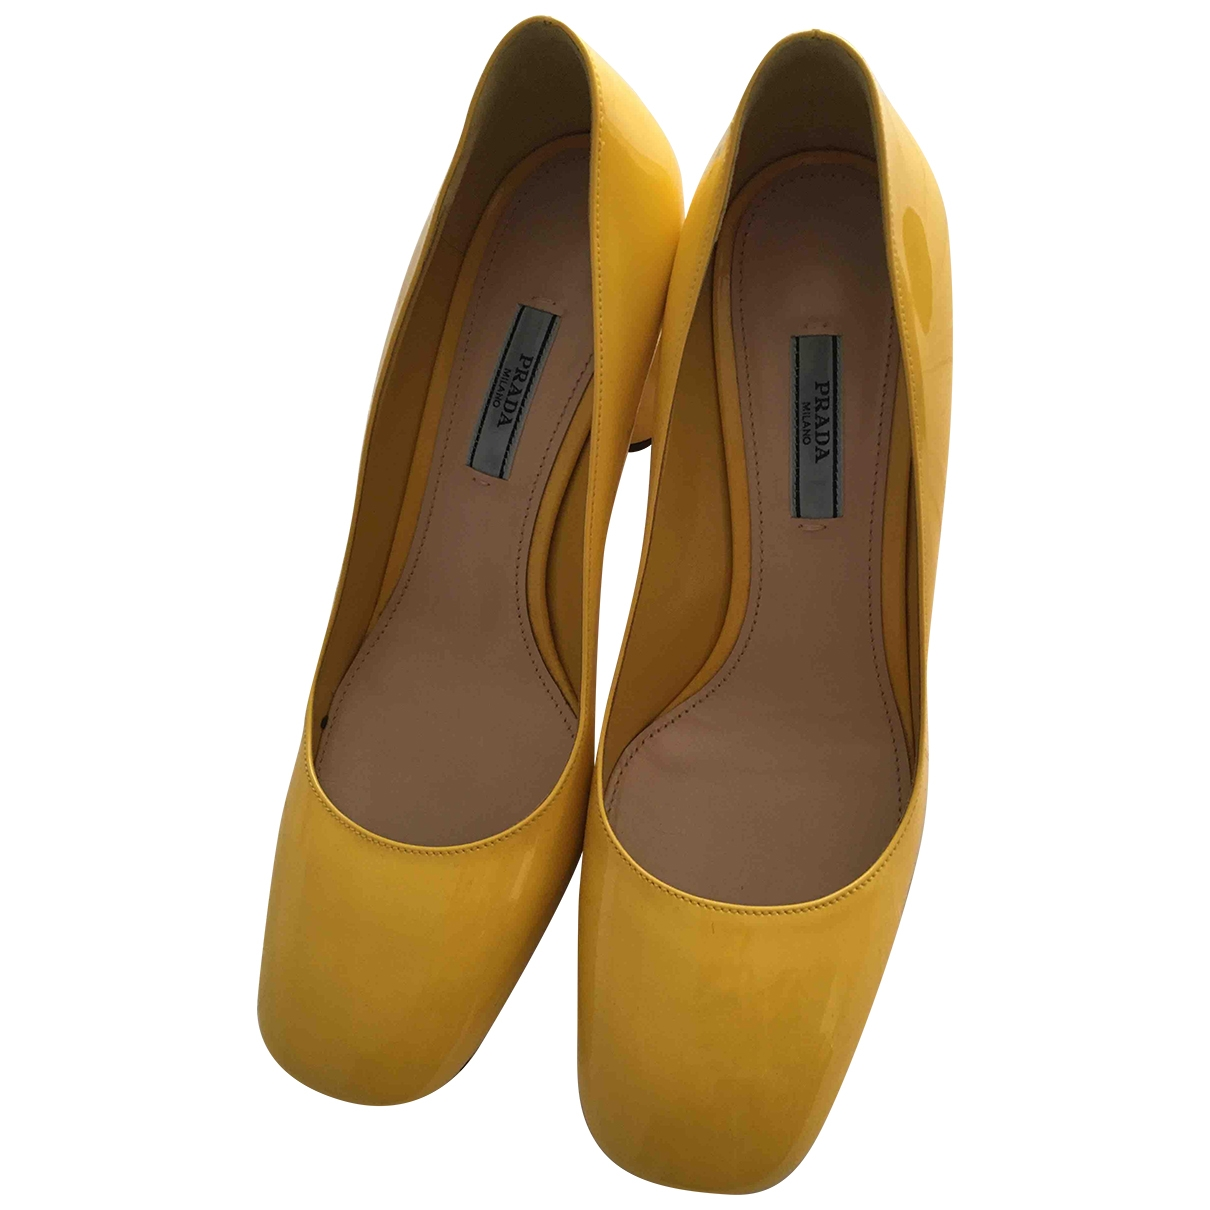 Prada \N Yellow Patent leather Heels for Women 38 EU